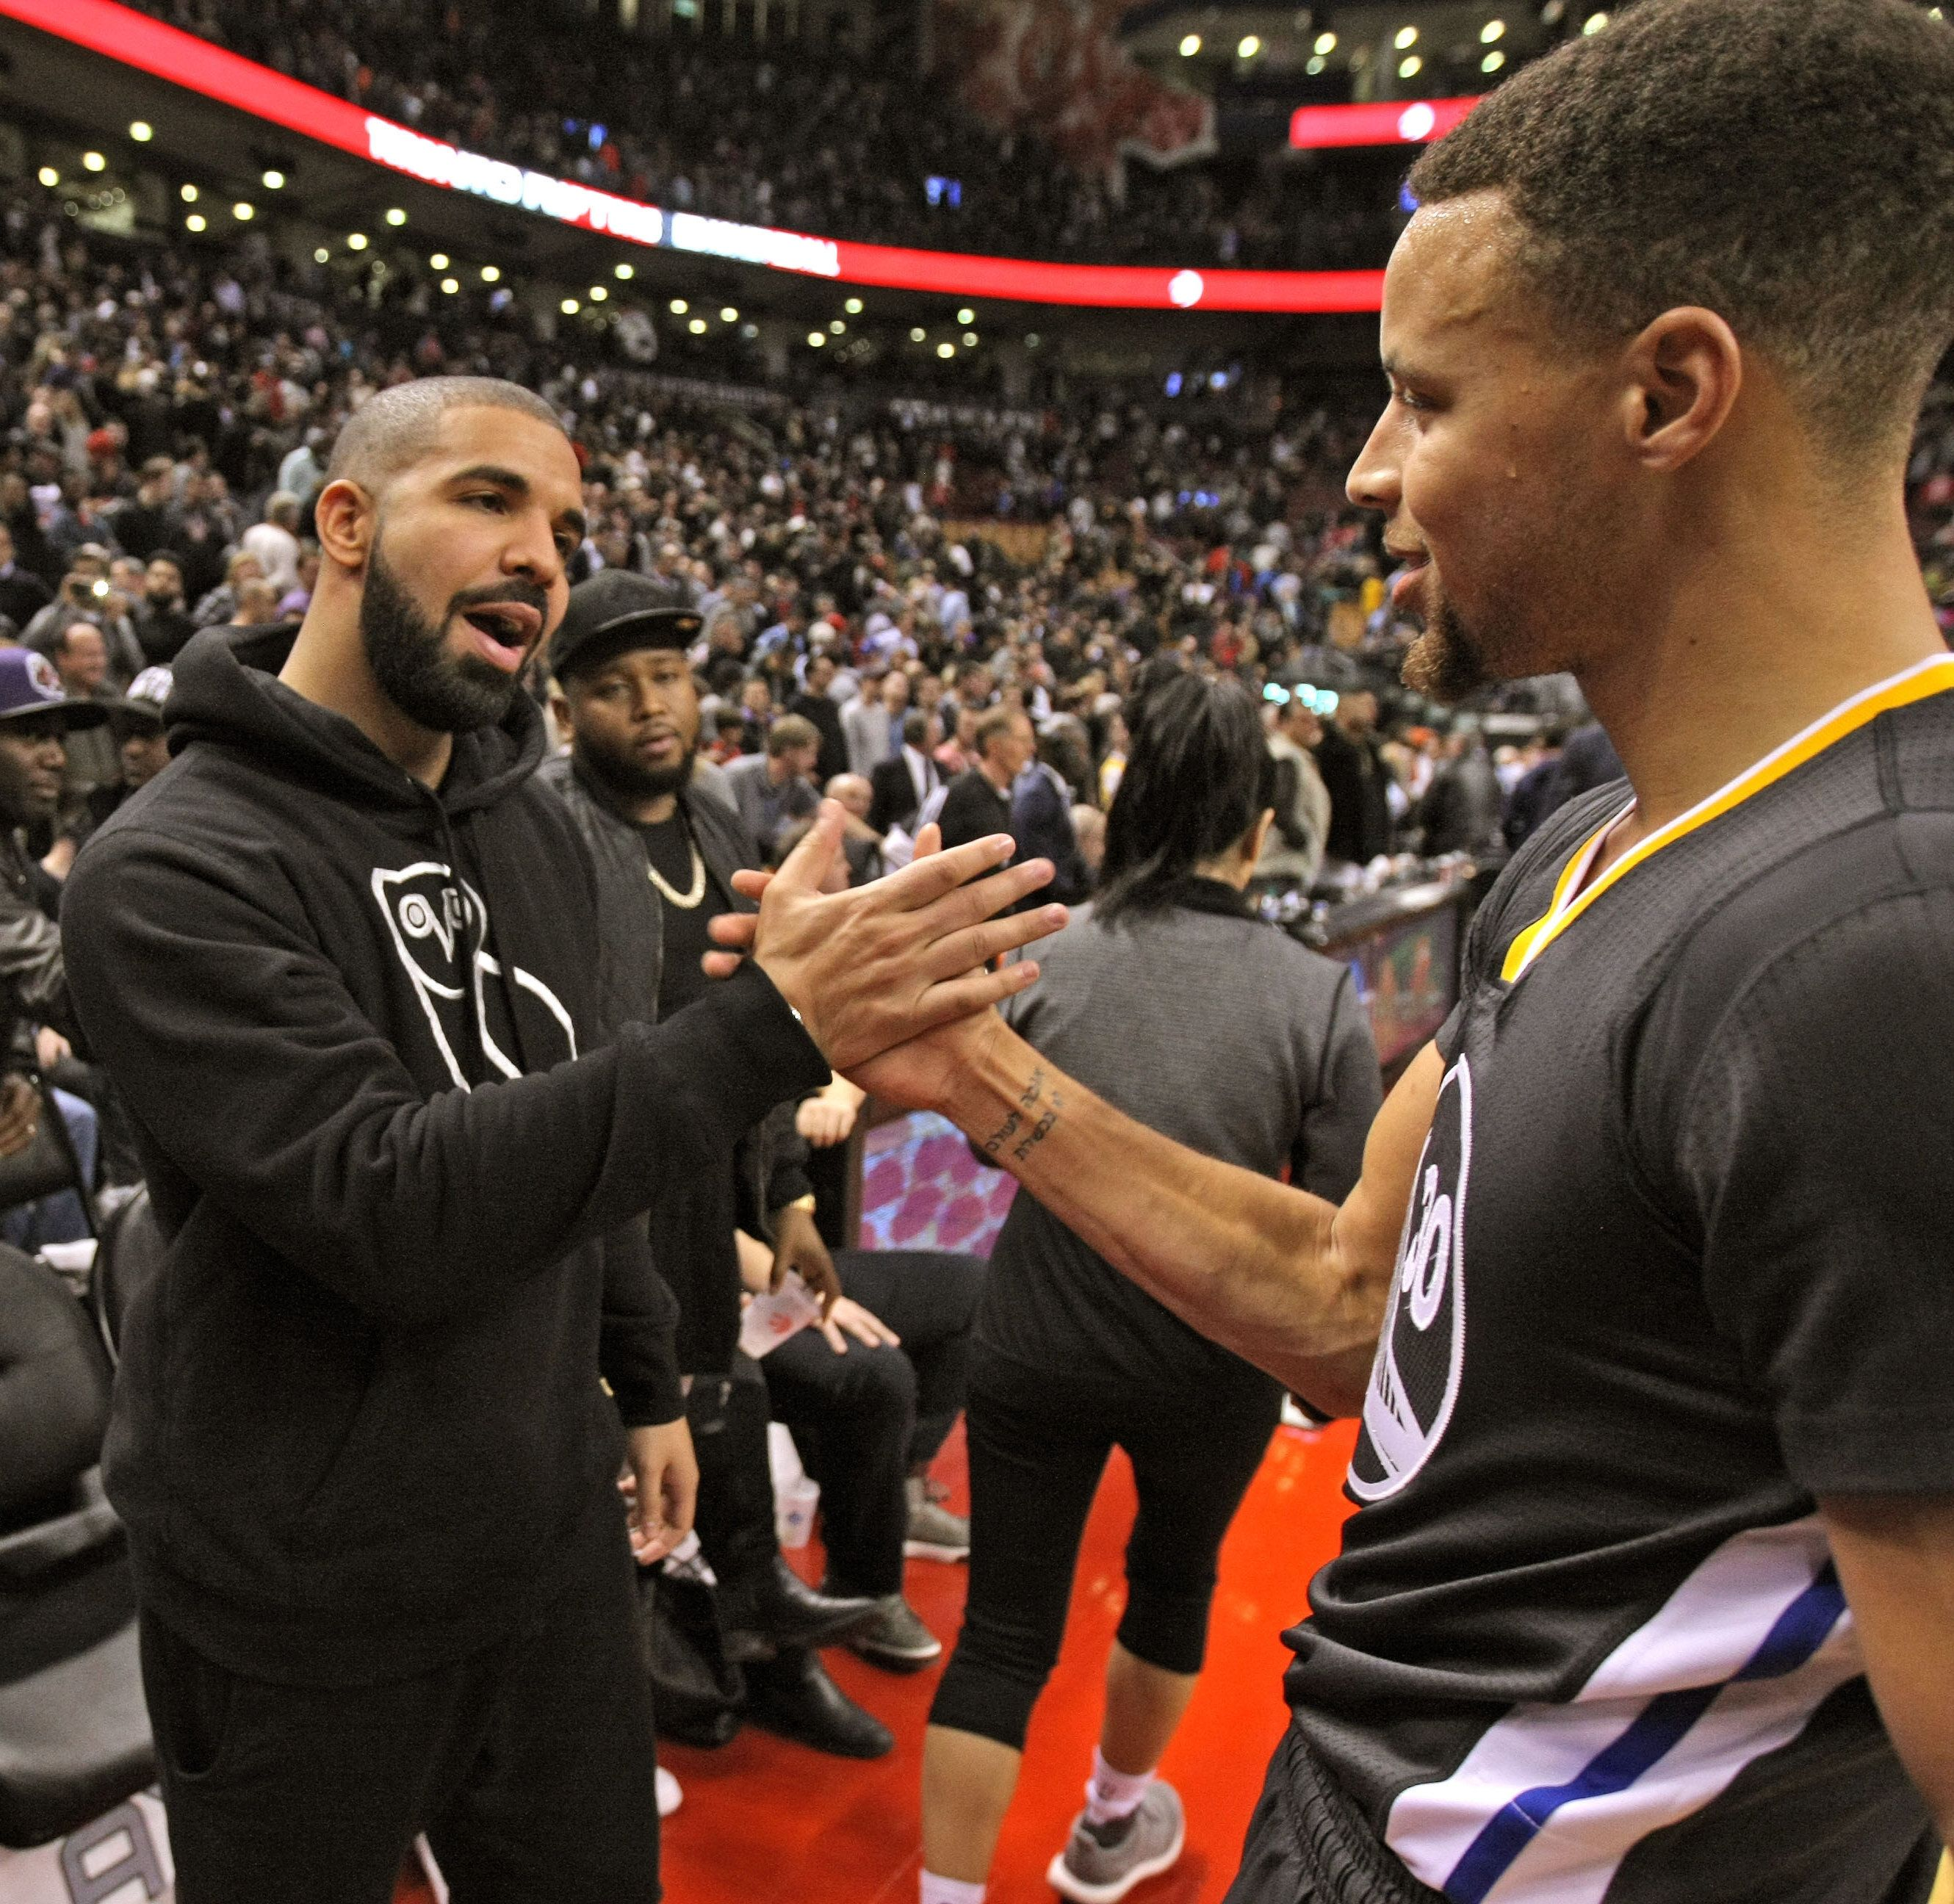 TORONTO, ON - DECEMBER 5:  Drake and Stephen Curry #30 of the Golden State Warriors after the game against the Toronto Raptors on December 5, 2015 at Air Canada Centre in Toronto, Ontario, Canada. NOTE TO USER: User expressly acknowledges and agrees that, by downloading and or using this photograph, User is consenting to the terms and conditions of the Getty Images License Agreement. Mandatory Copyright Notice: Copyright 2015 NBAE (Photo by Dave Sandford/NBAE via Getty Images)